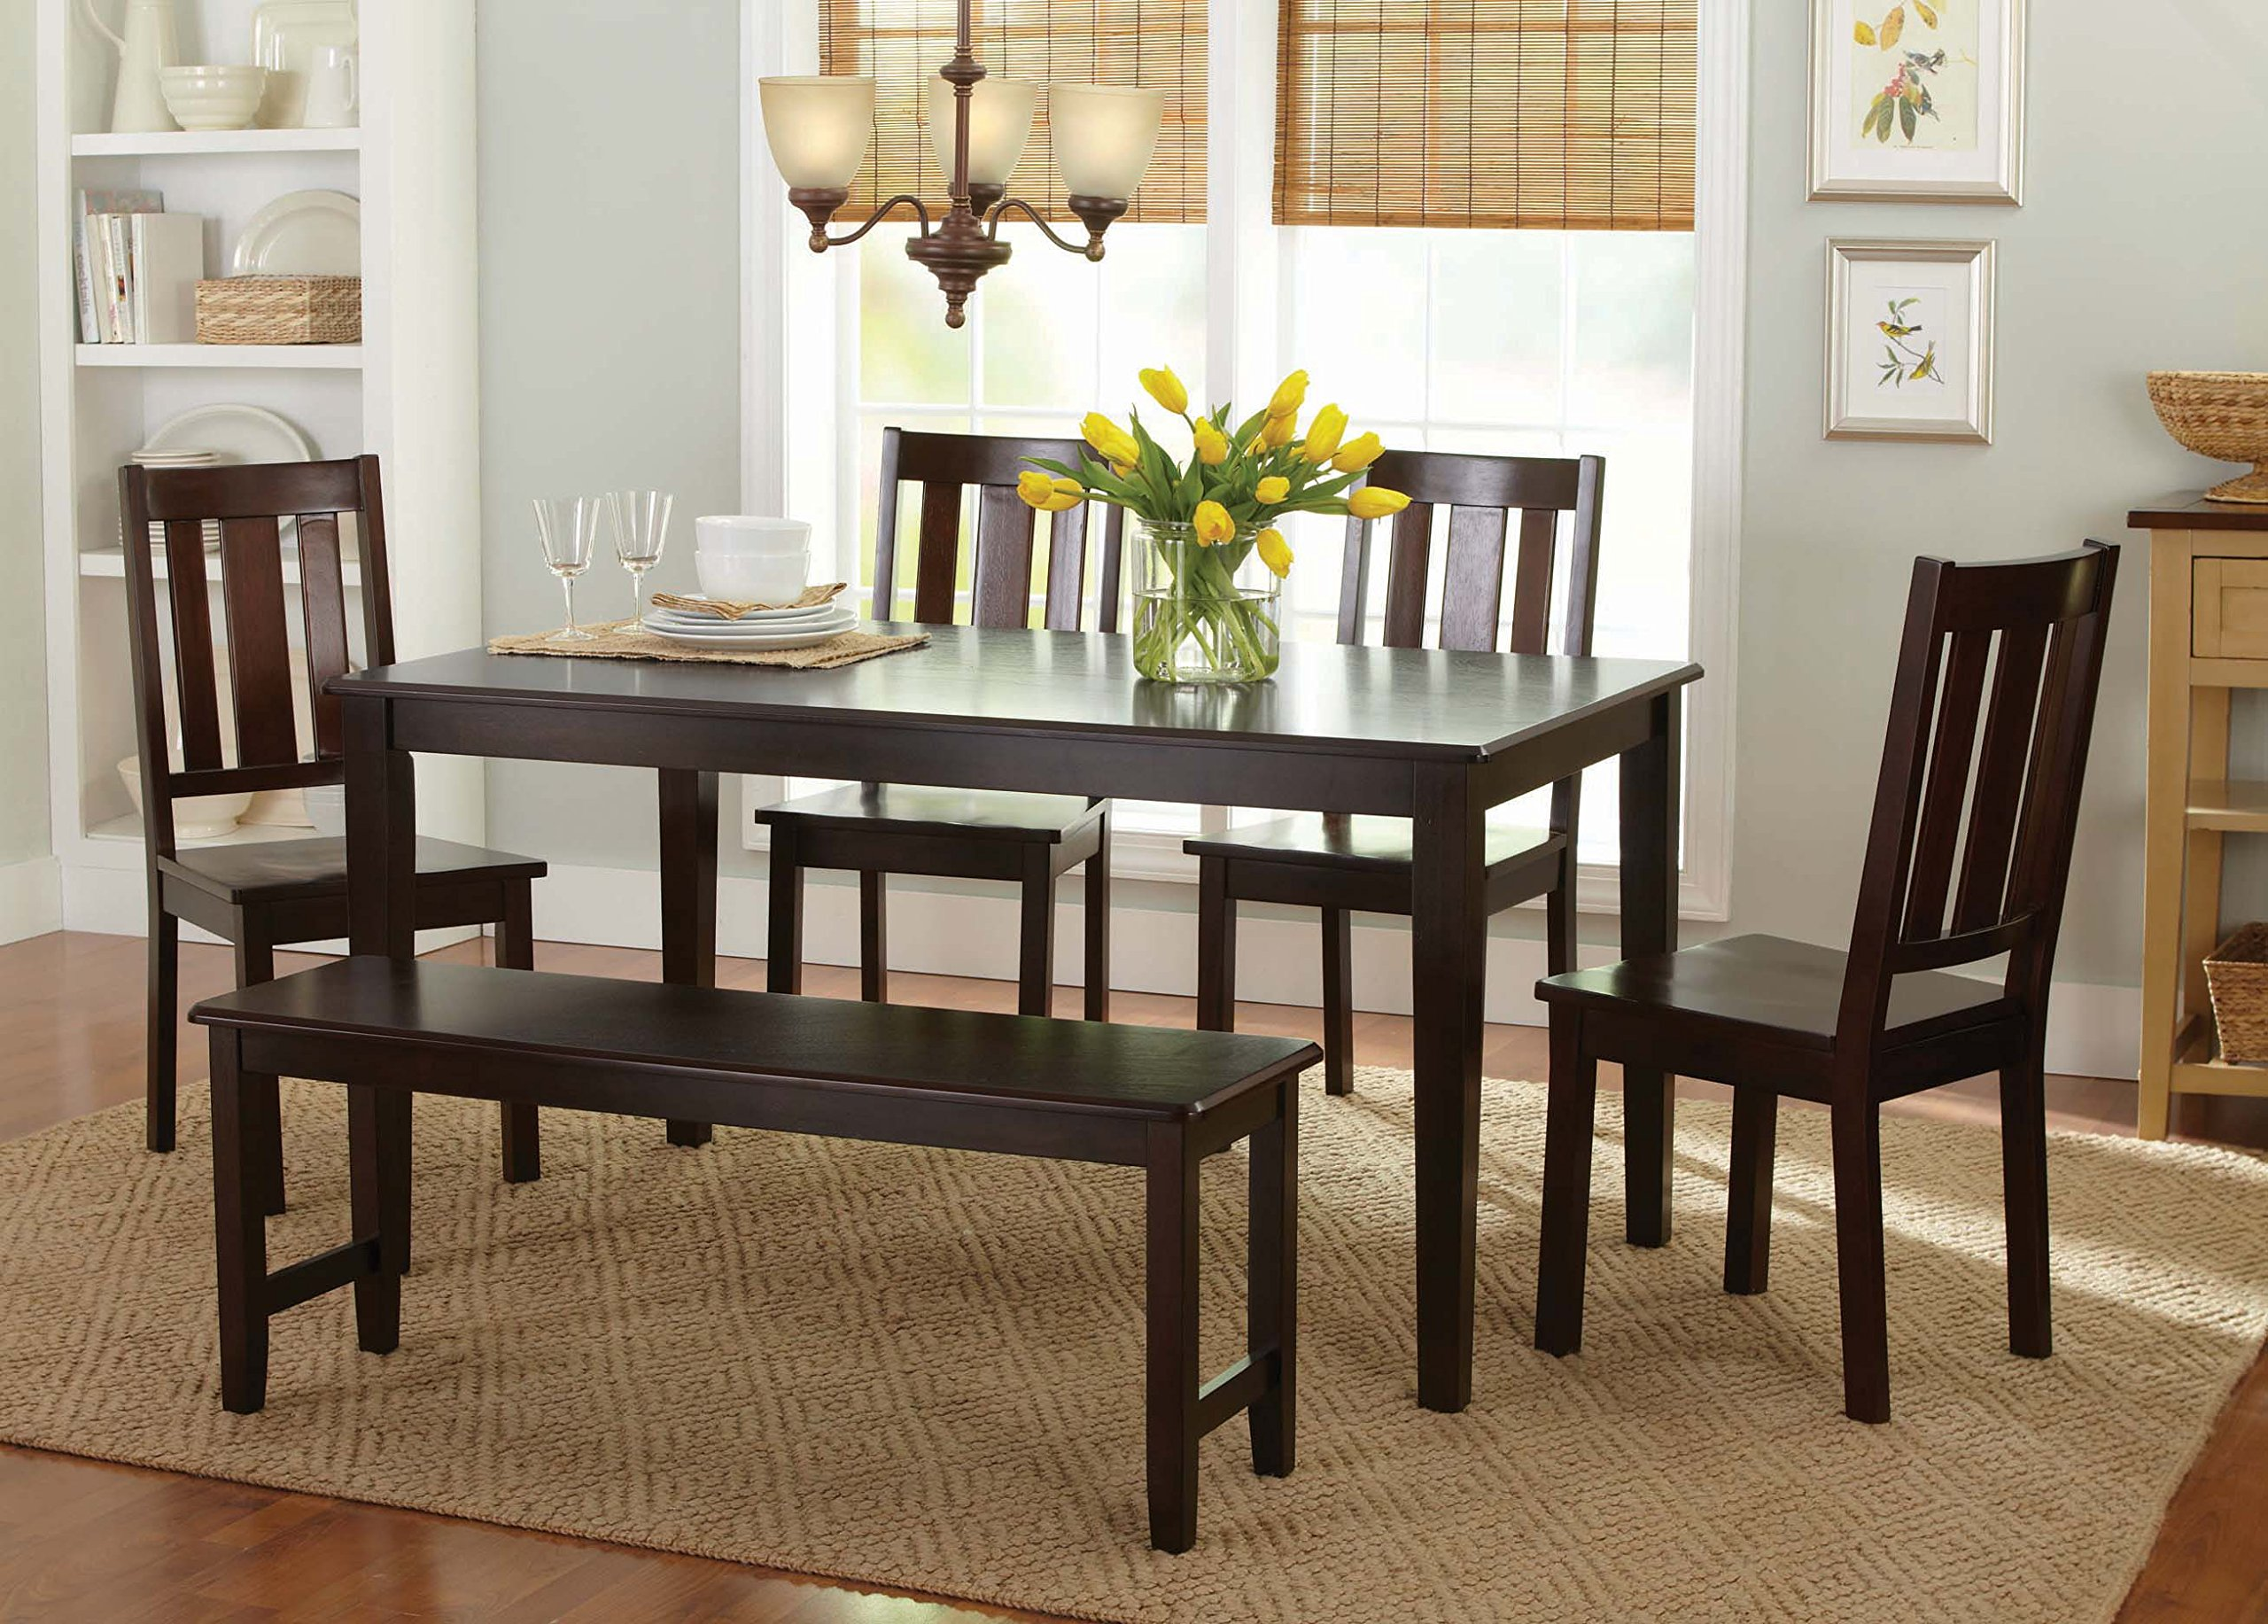 Bankston Dining Bench, Mocha, Espresso, Wood by Better Homes & Gardens (Image #3)